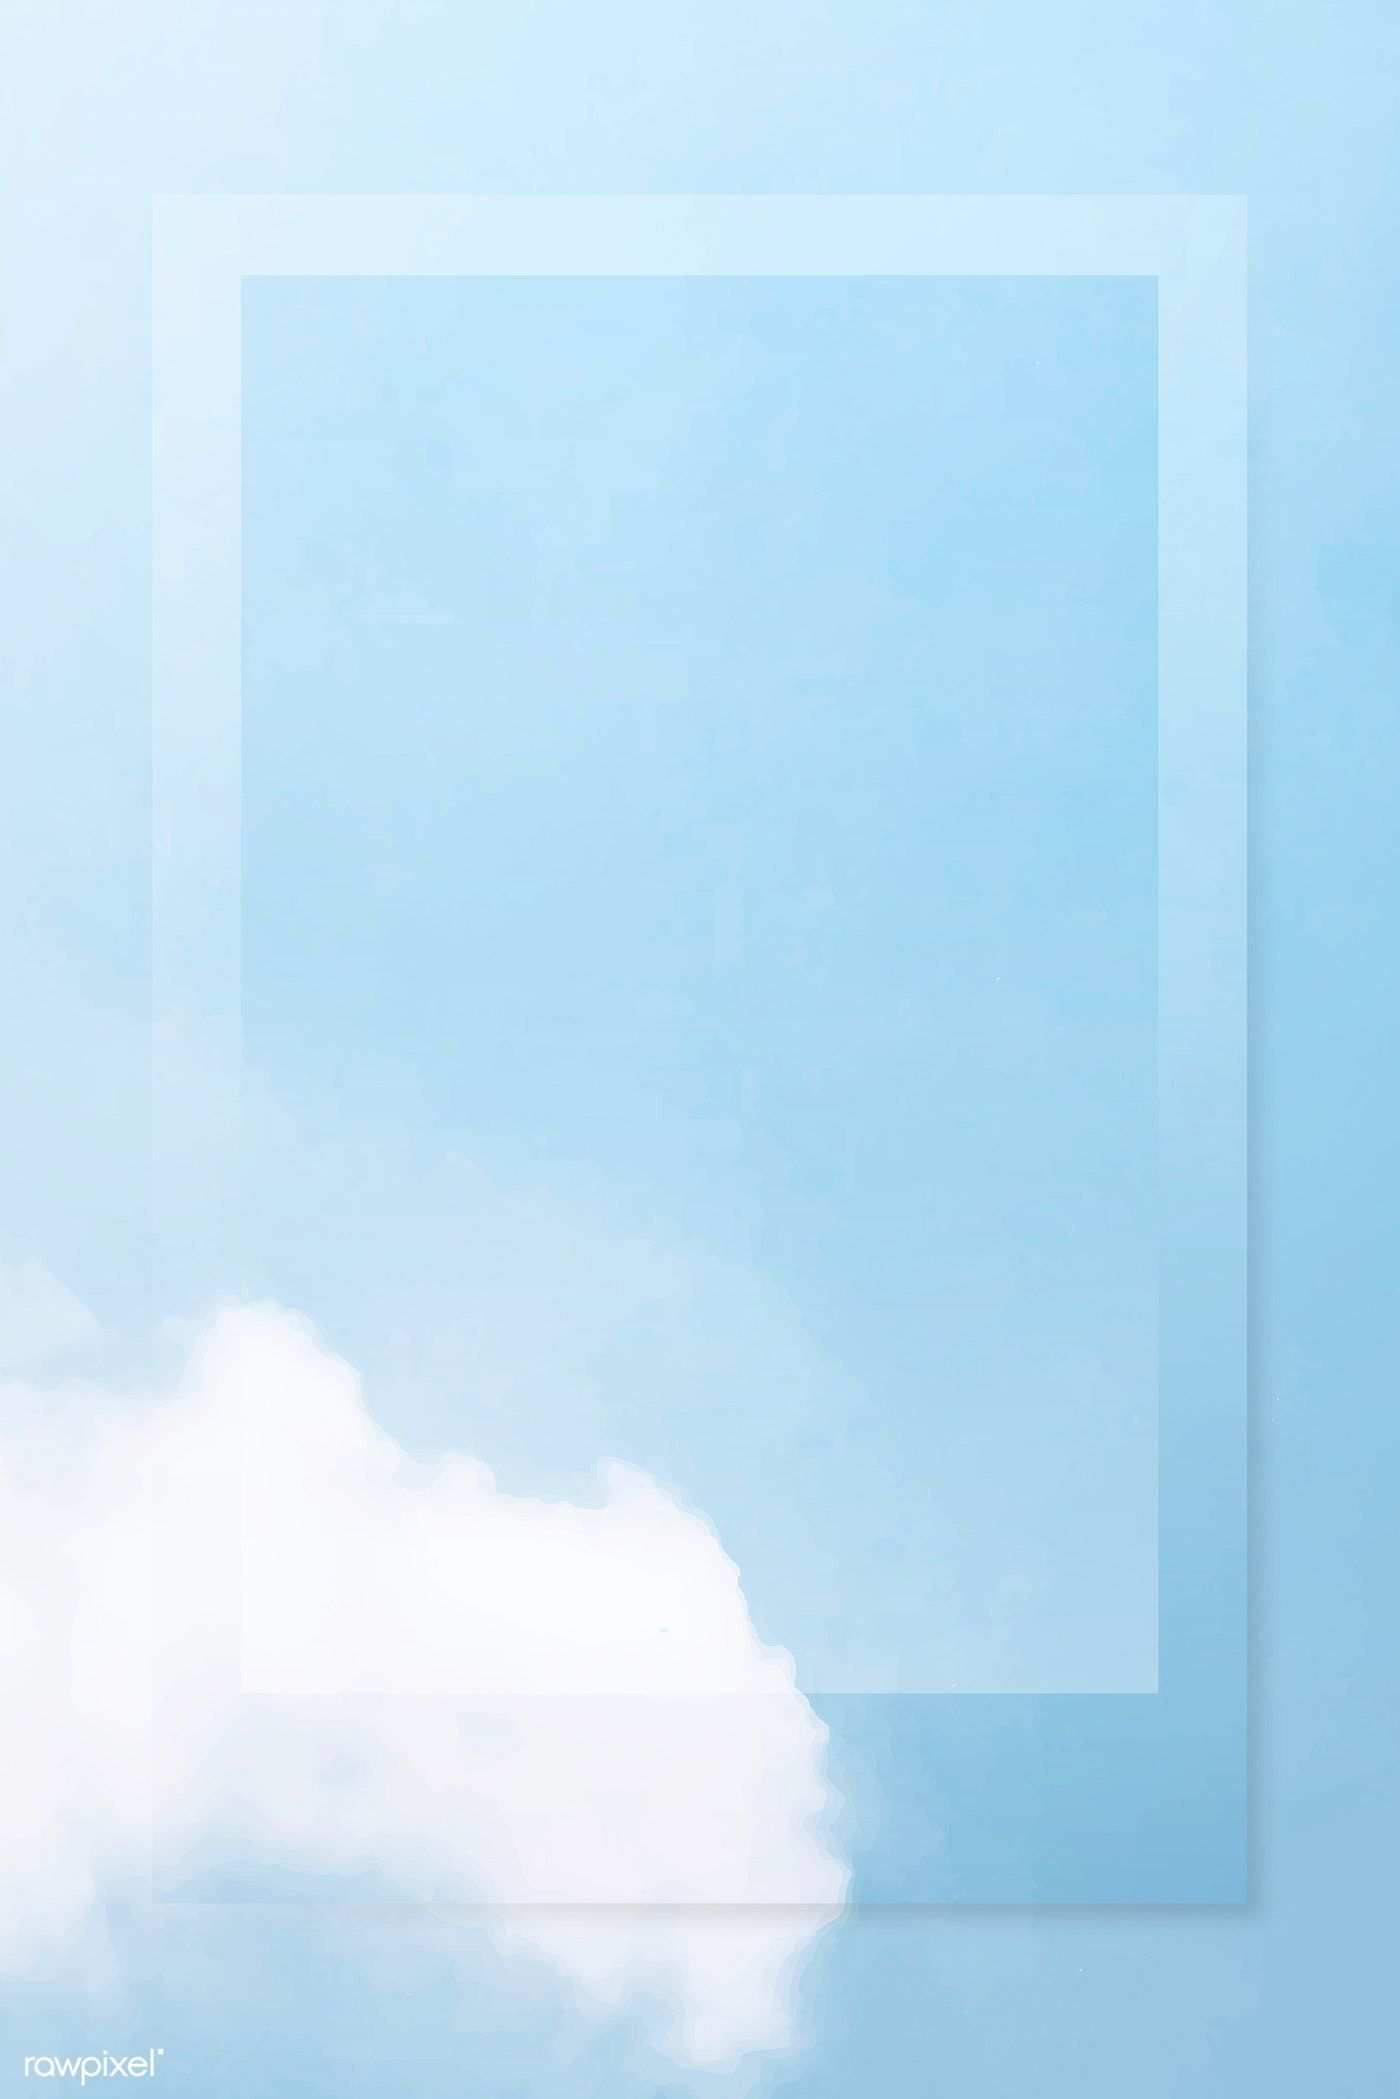 Frame On Cloudy Sky Vector Free Image By Rawpixel Com Kappy Kappy Background Design Vector Vector Free Blue Sky Background